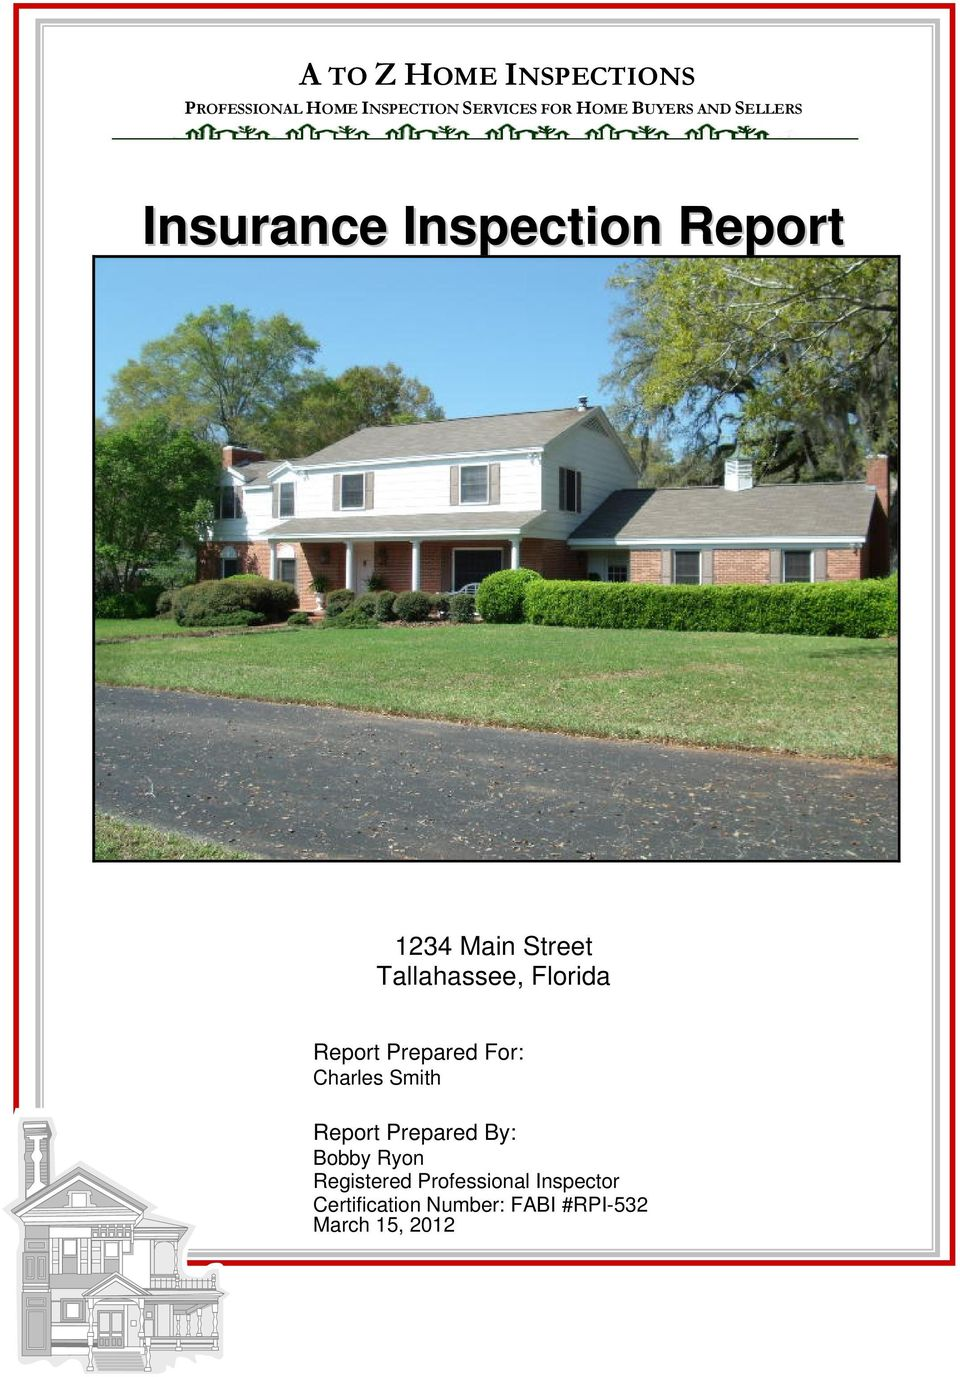 Tallahassee, Florida Report Prepared For: Charles Smith Report Prepared